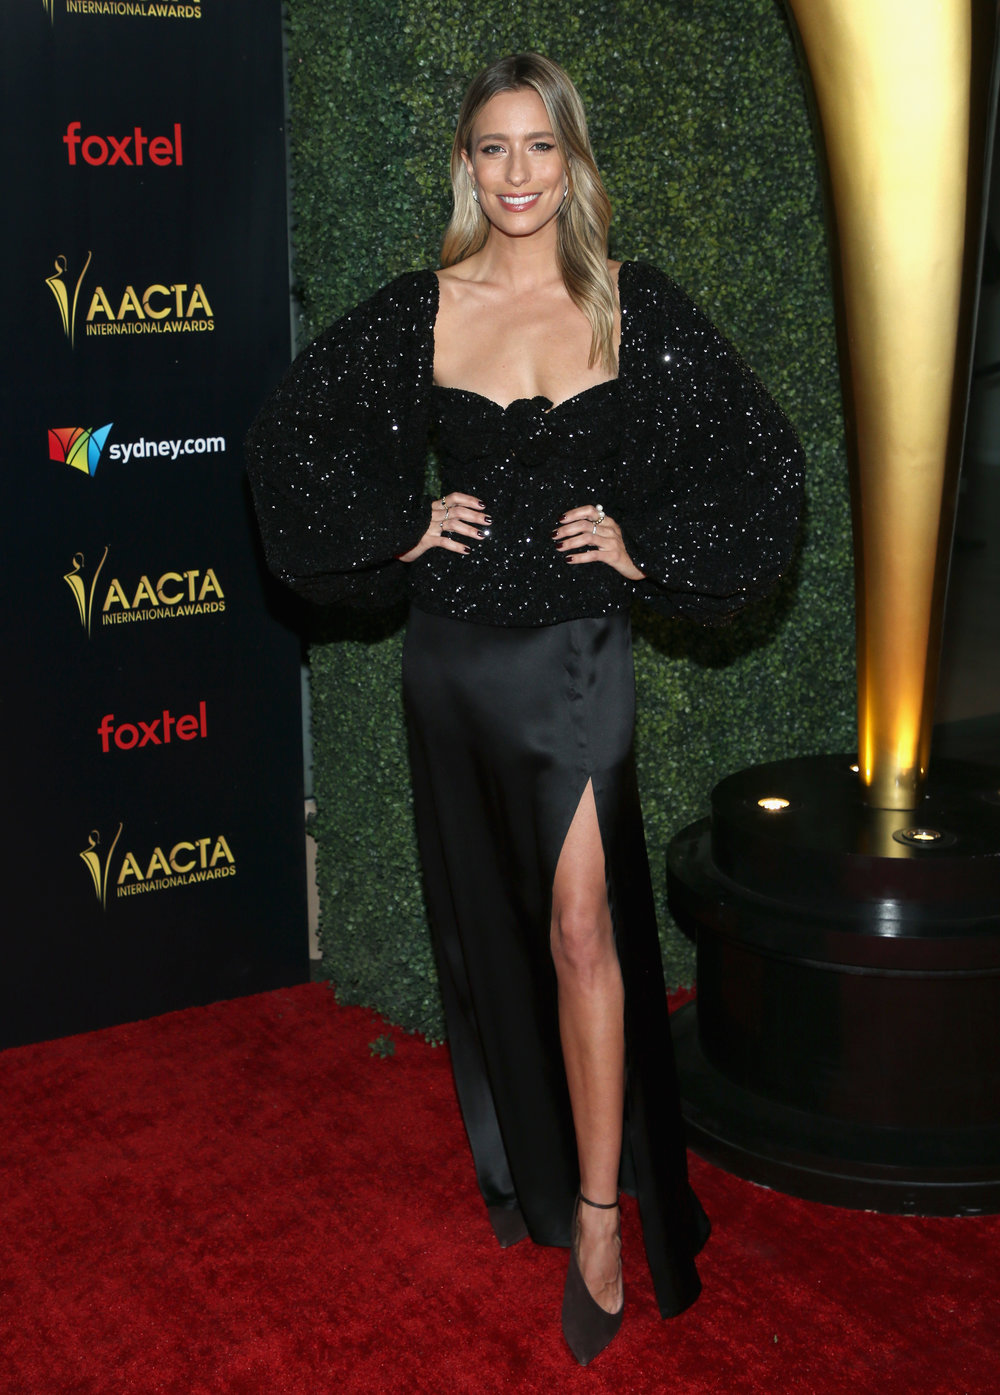 775191456PL00006_8th_AACTA_.JPG